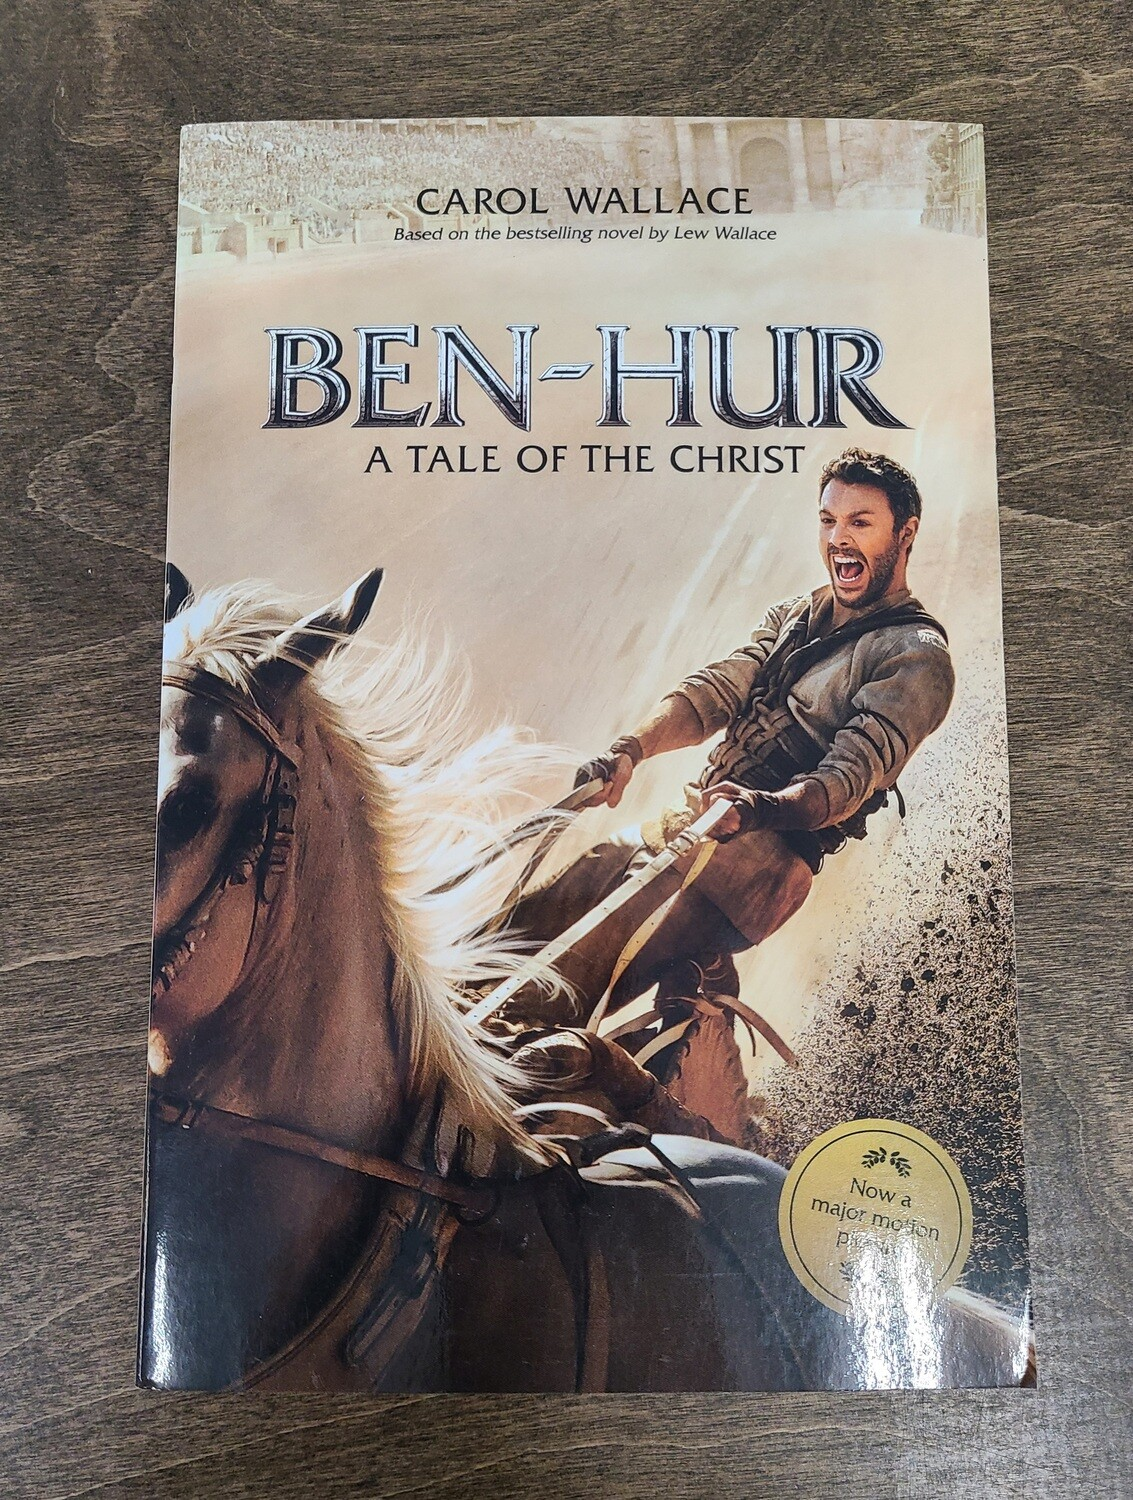 Ben-Hur: A Tale of the Christ by Lew Wallace and Carol Wallace